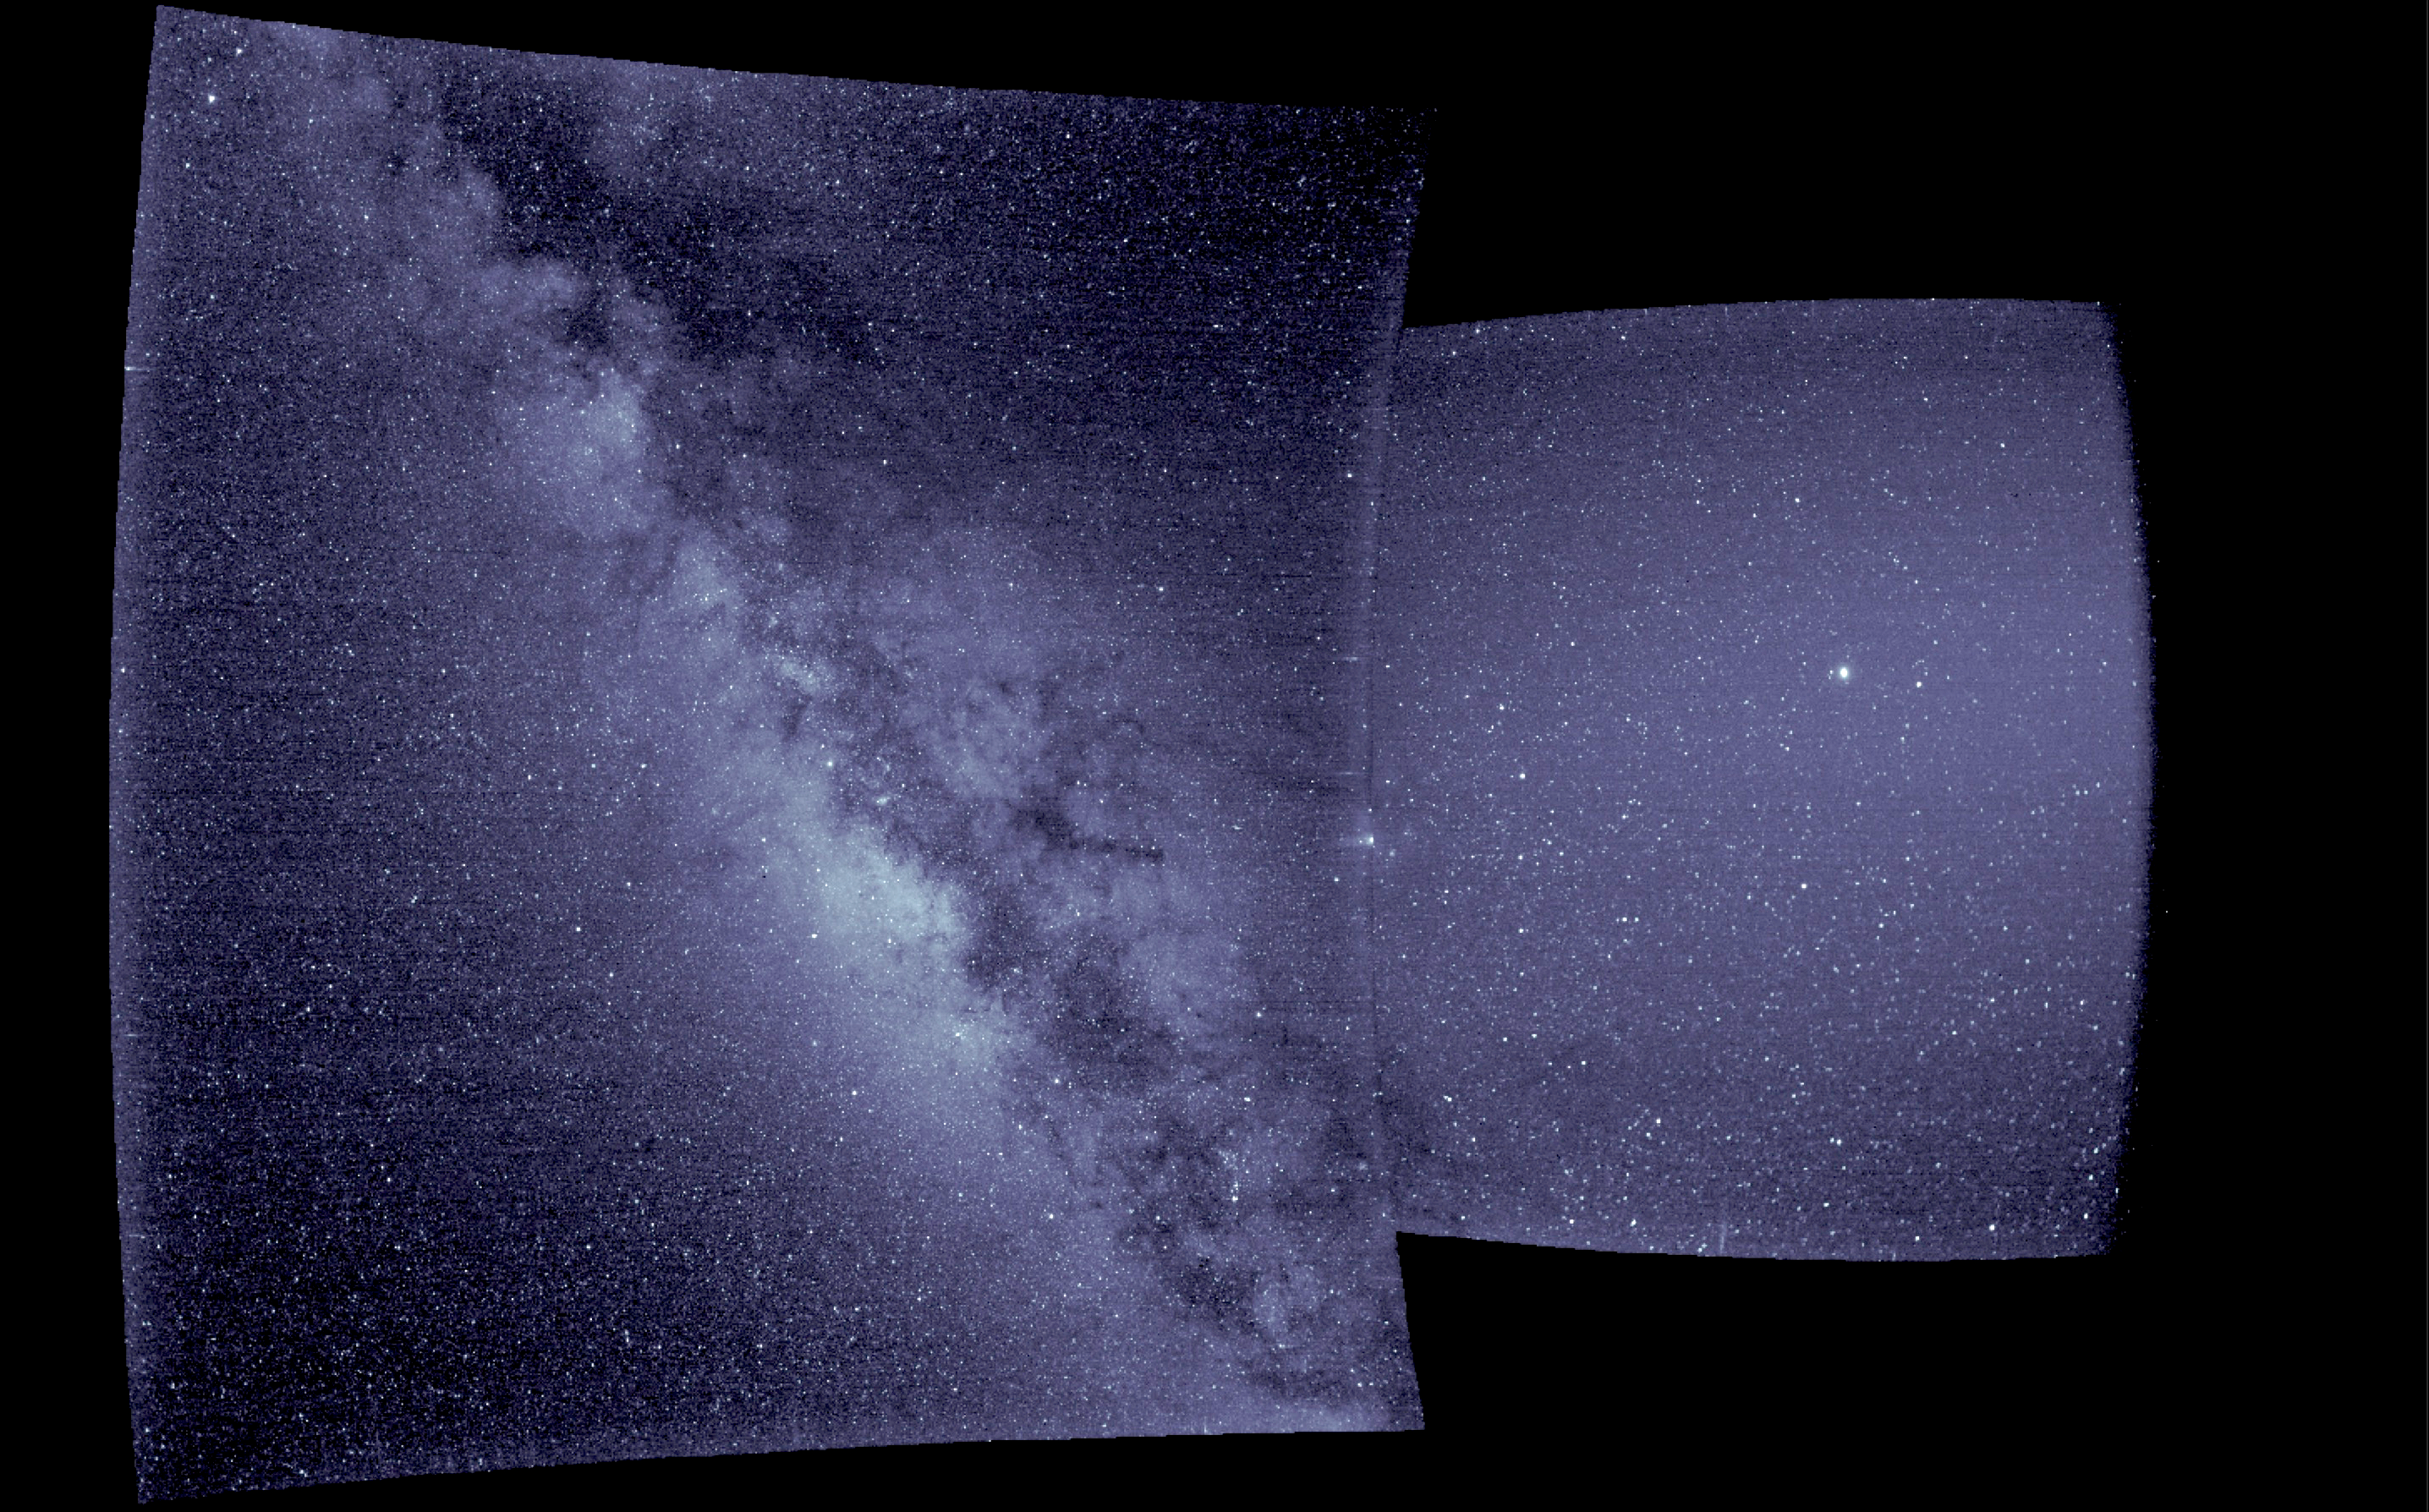 A blue-toned, two-panel image of space with stars visible throughout. In the left panel, the Milky Way is also visible.